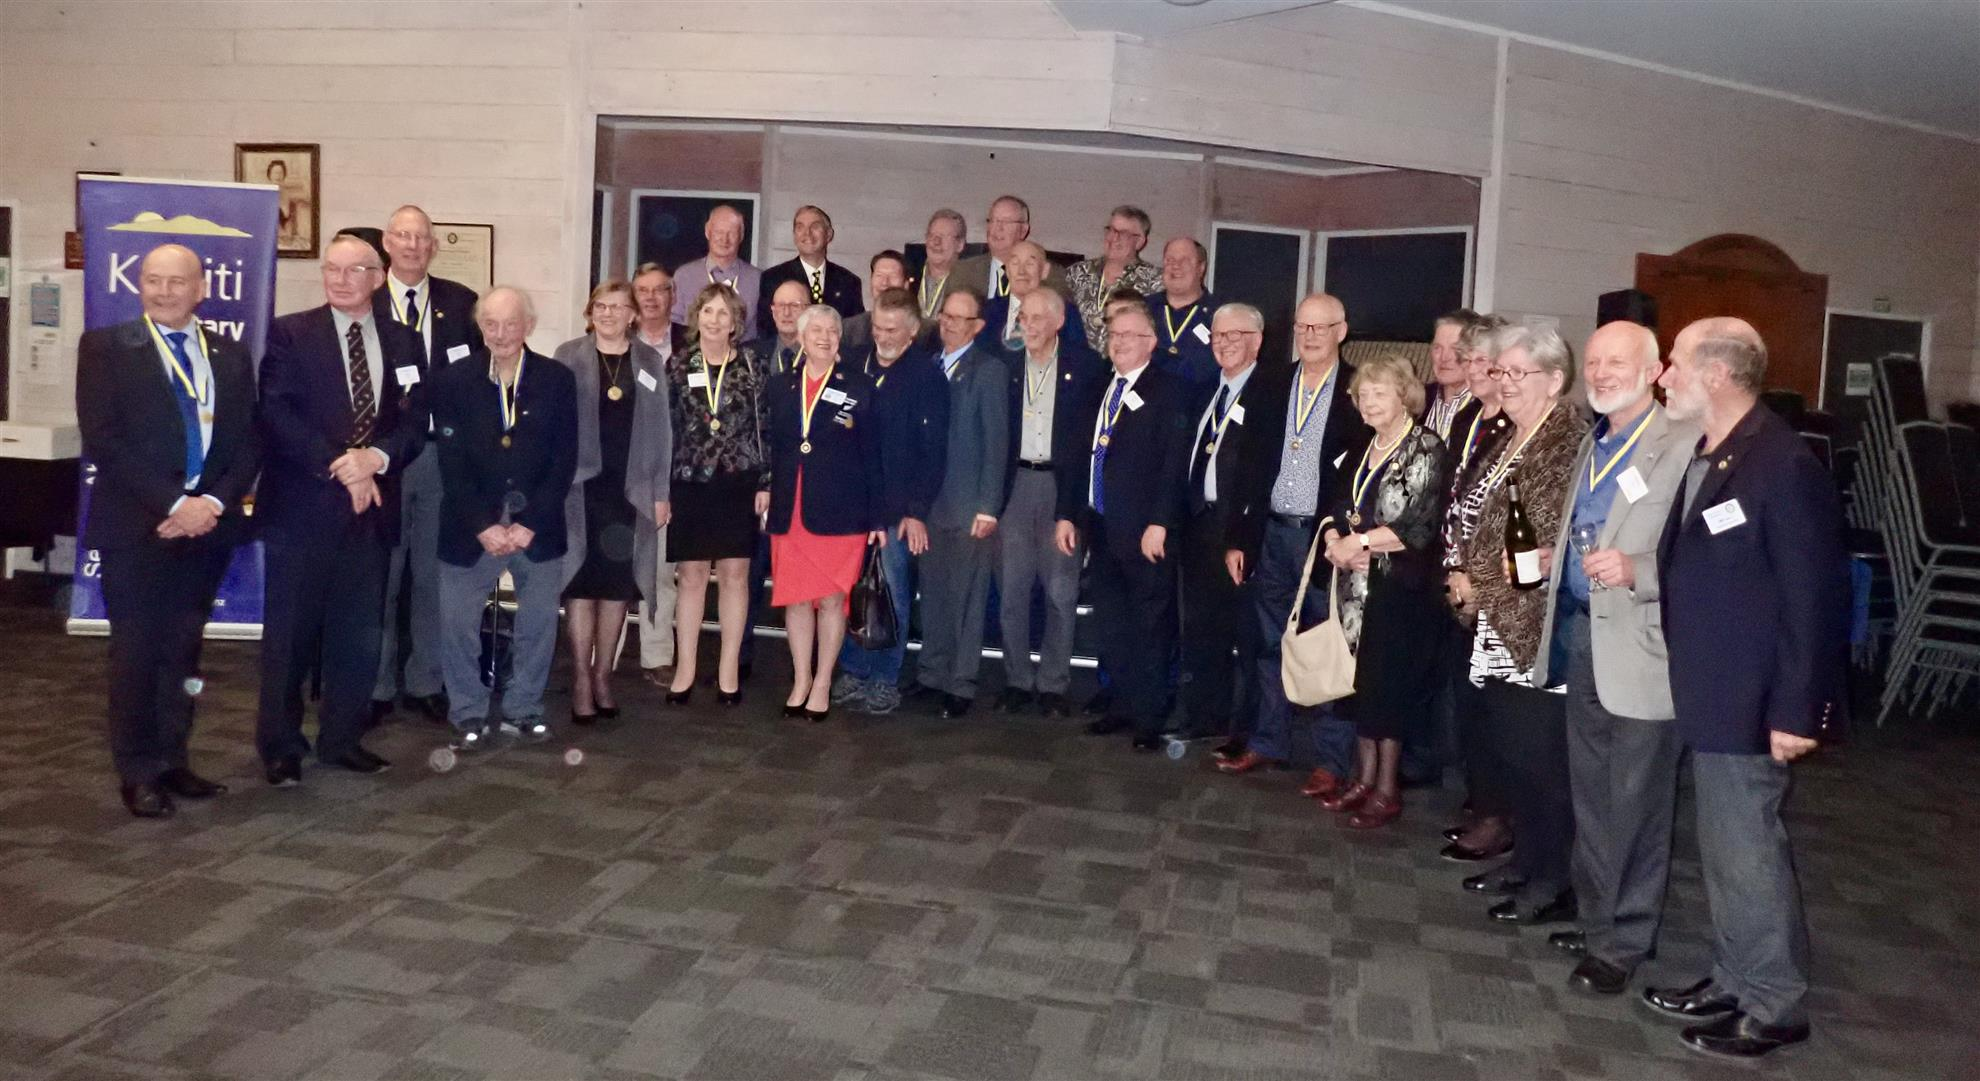 Paul Harris Fellows from Kapiti & Paraparaumu Rotary Clubs